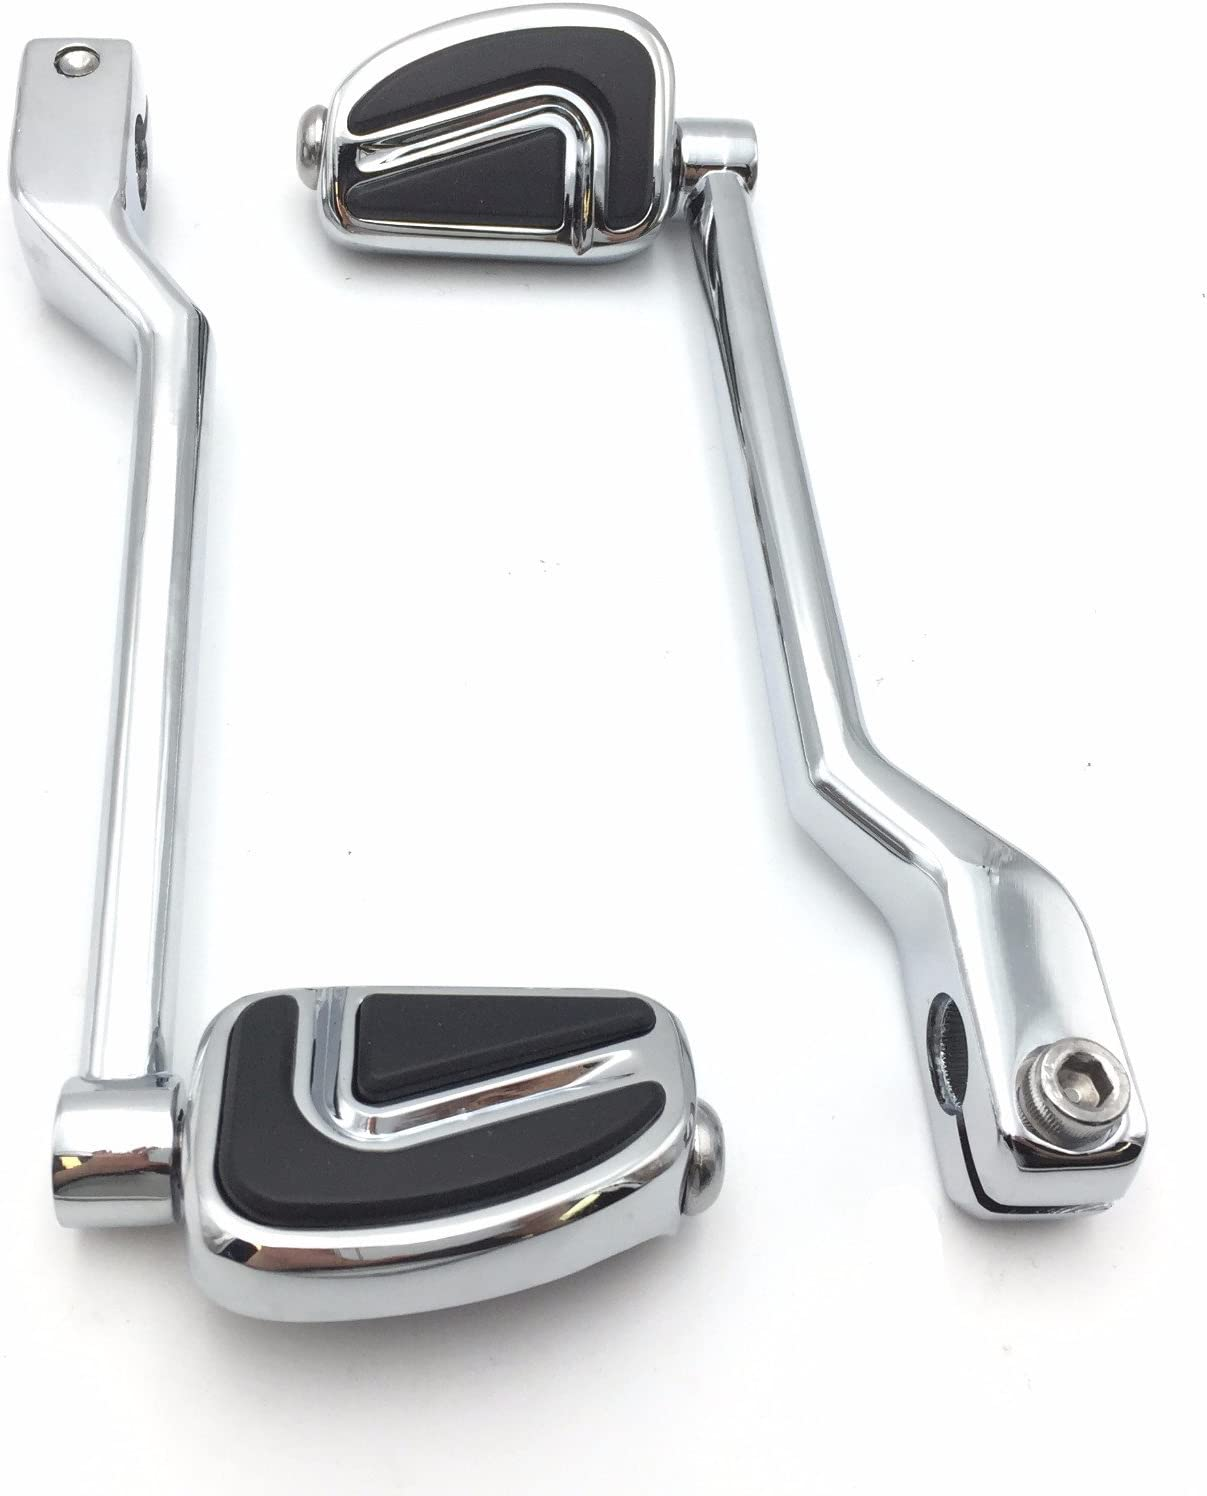 SMT-Chromed 2 PCs Billet Style Heel Toe Shift Lever Gear Shift Foot Lever with Airflow Shifter Pegs Compatible With Harley Davidson FL Softail Touring Trike FLST FLT FLHT B01EXLZOOI